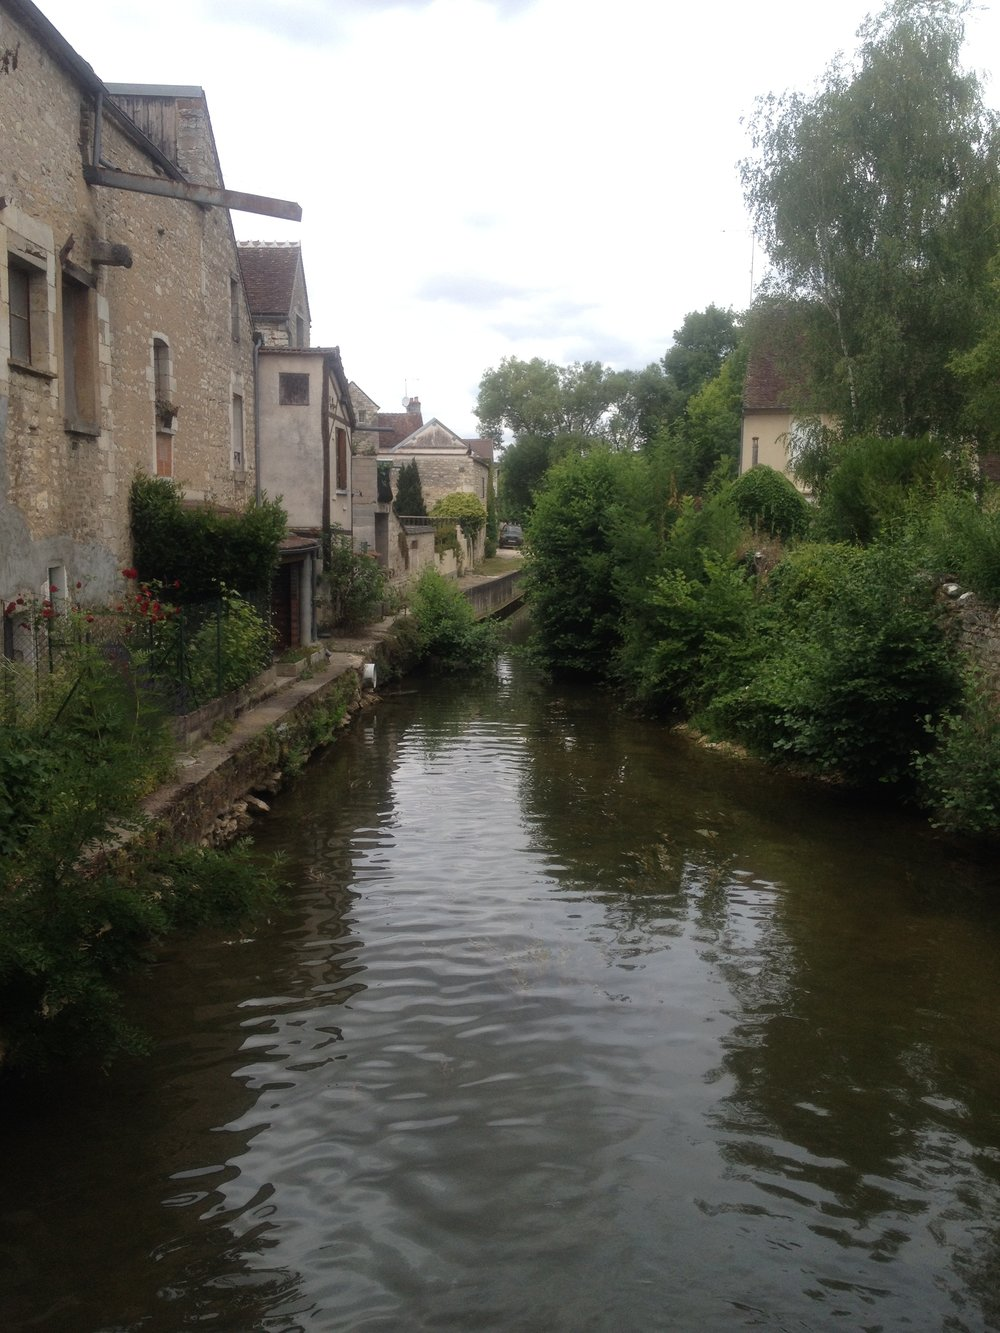 Chablis and the River Serein which runs through the village.